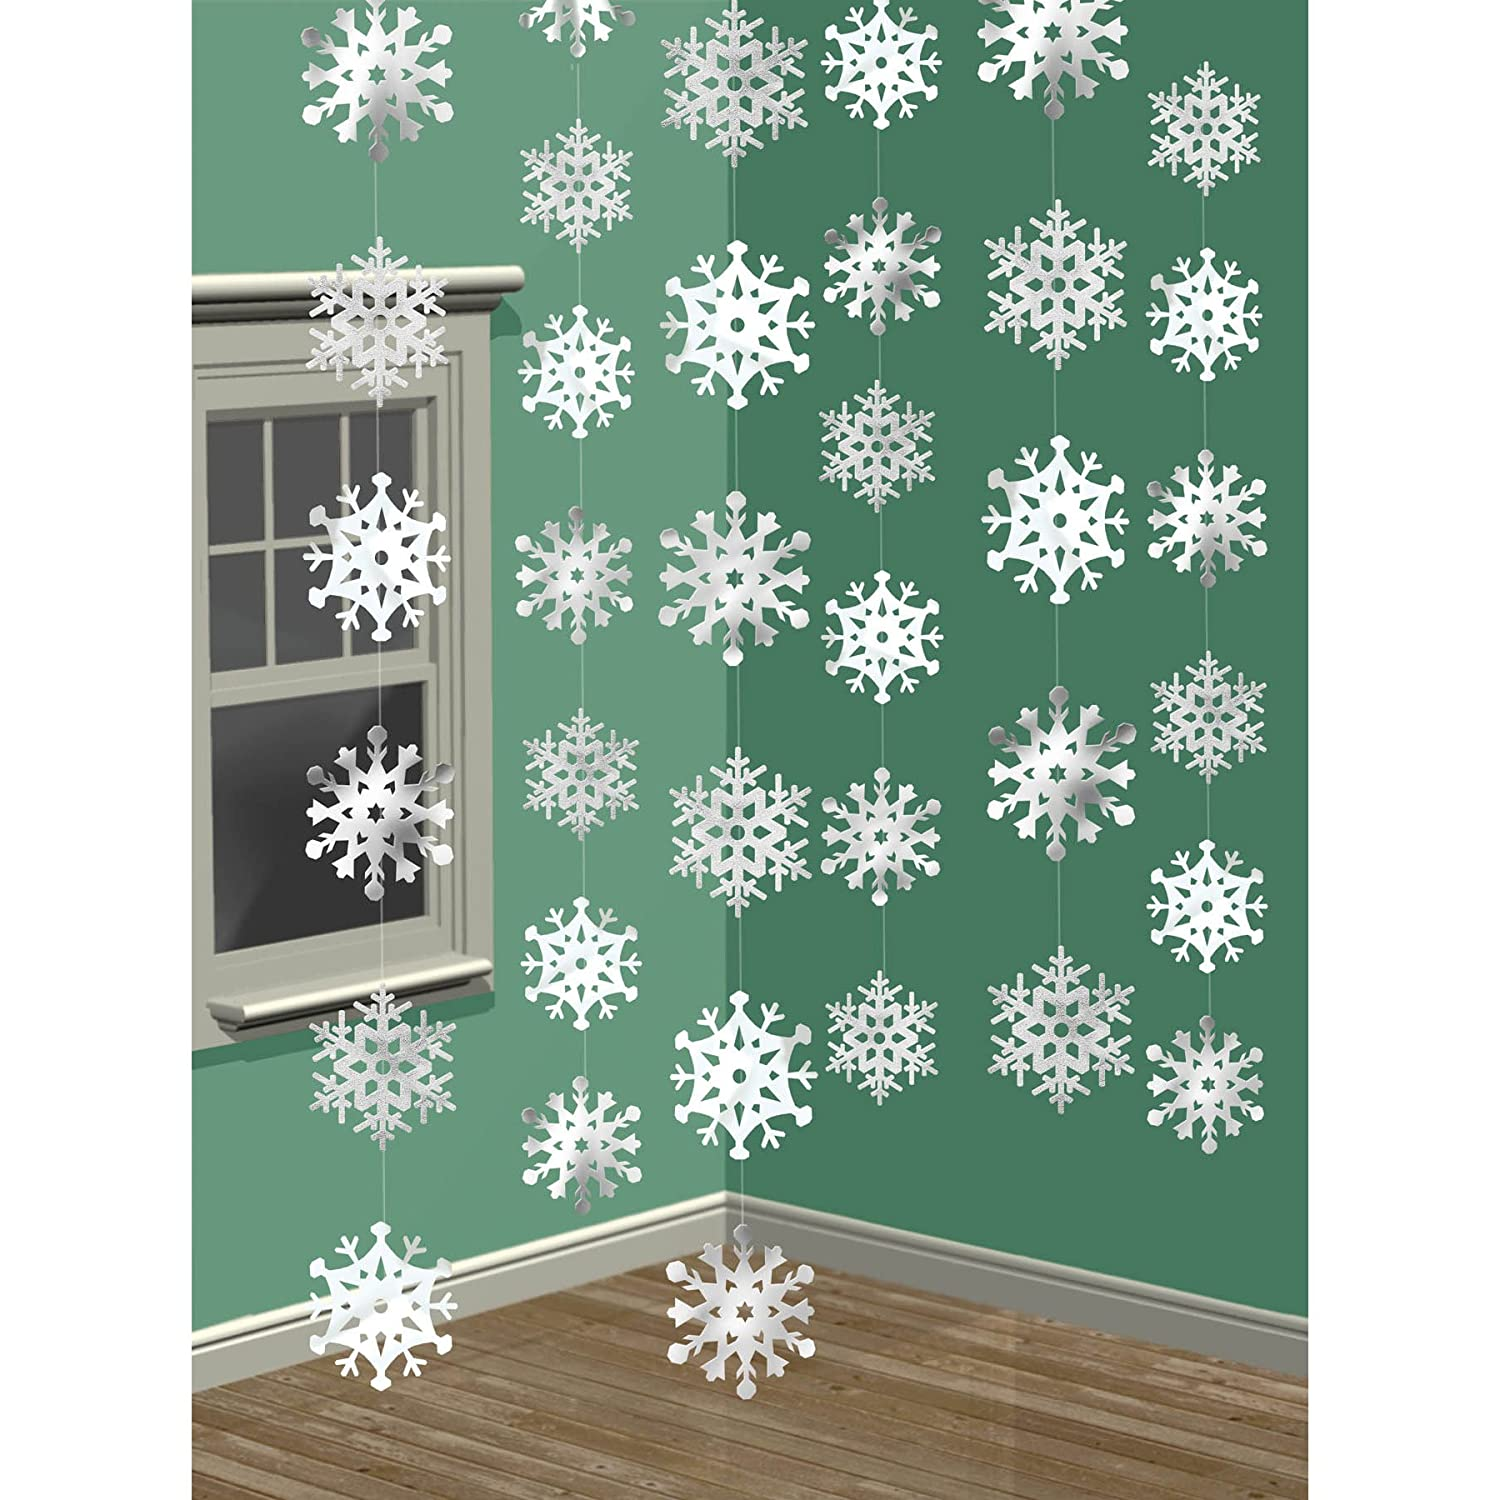 glitter for styrofoam of cob craft decor set foam products white snowflake large decorations snowflakes window